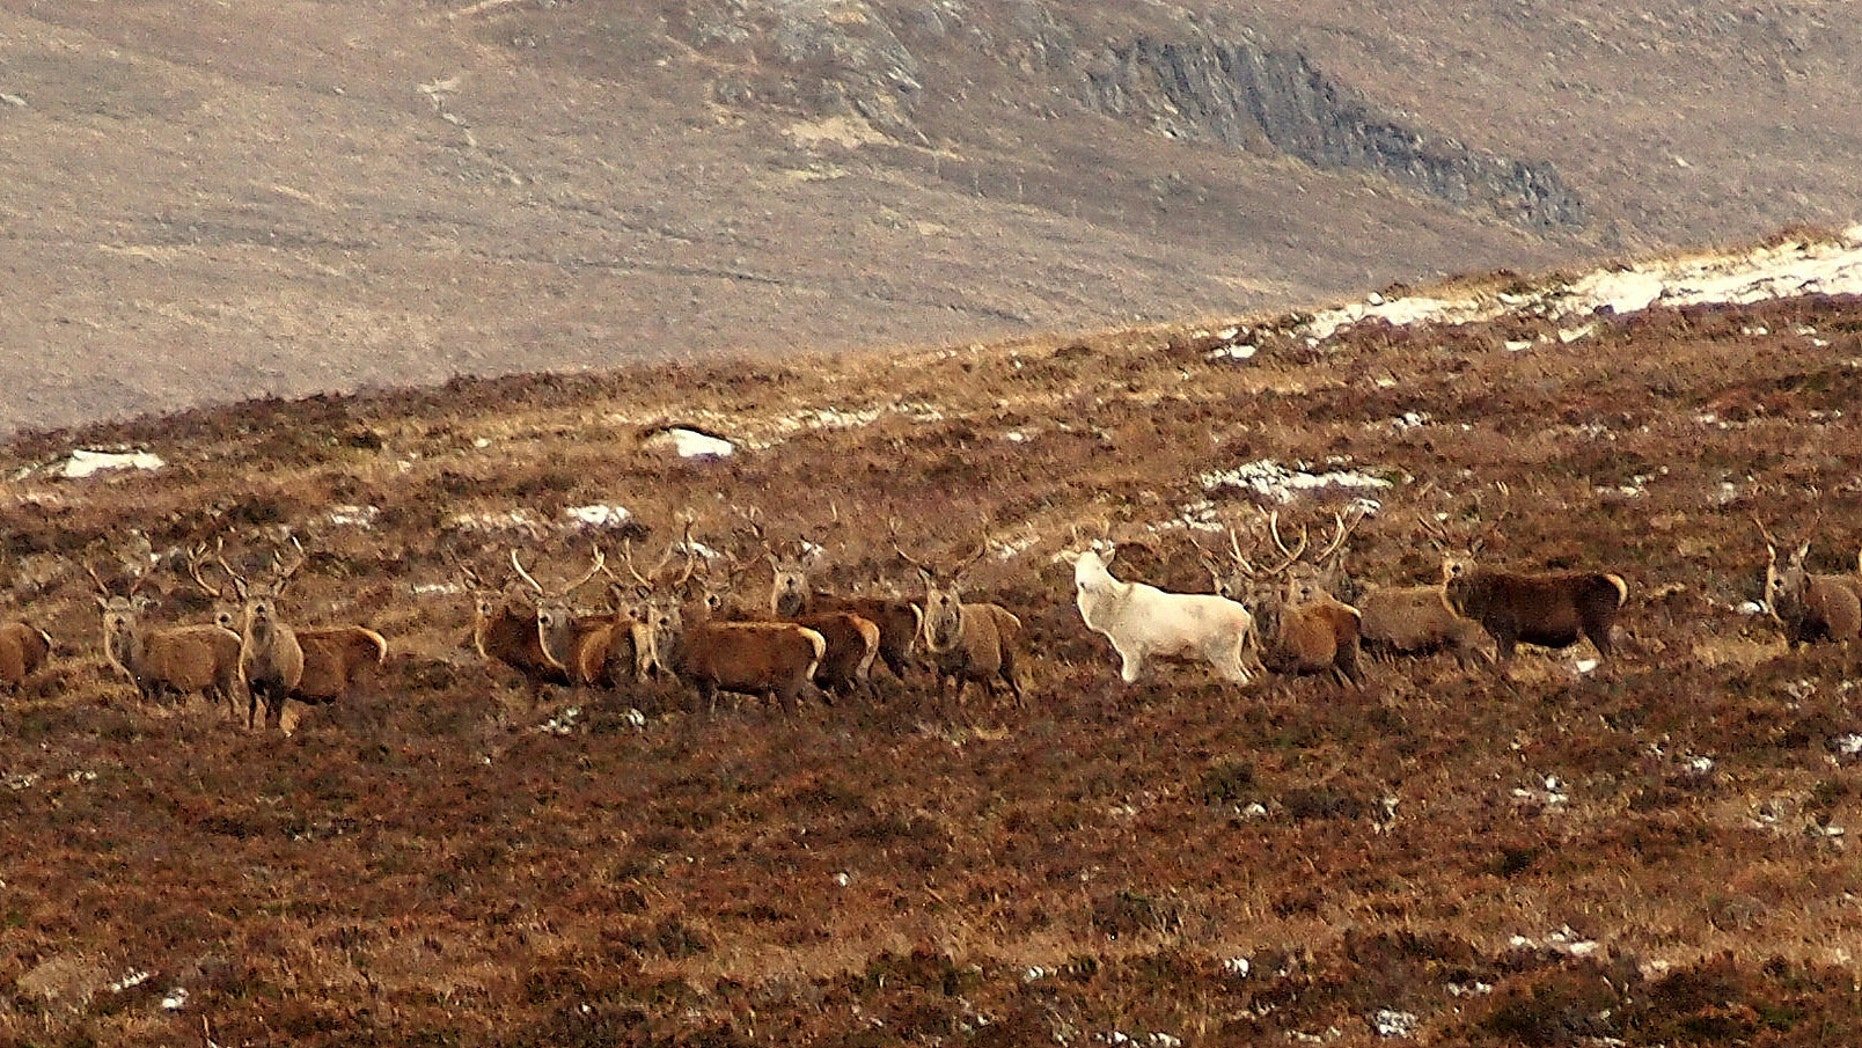 The rare white stag was spotted in the Scottish Highlands